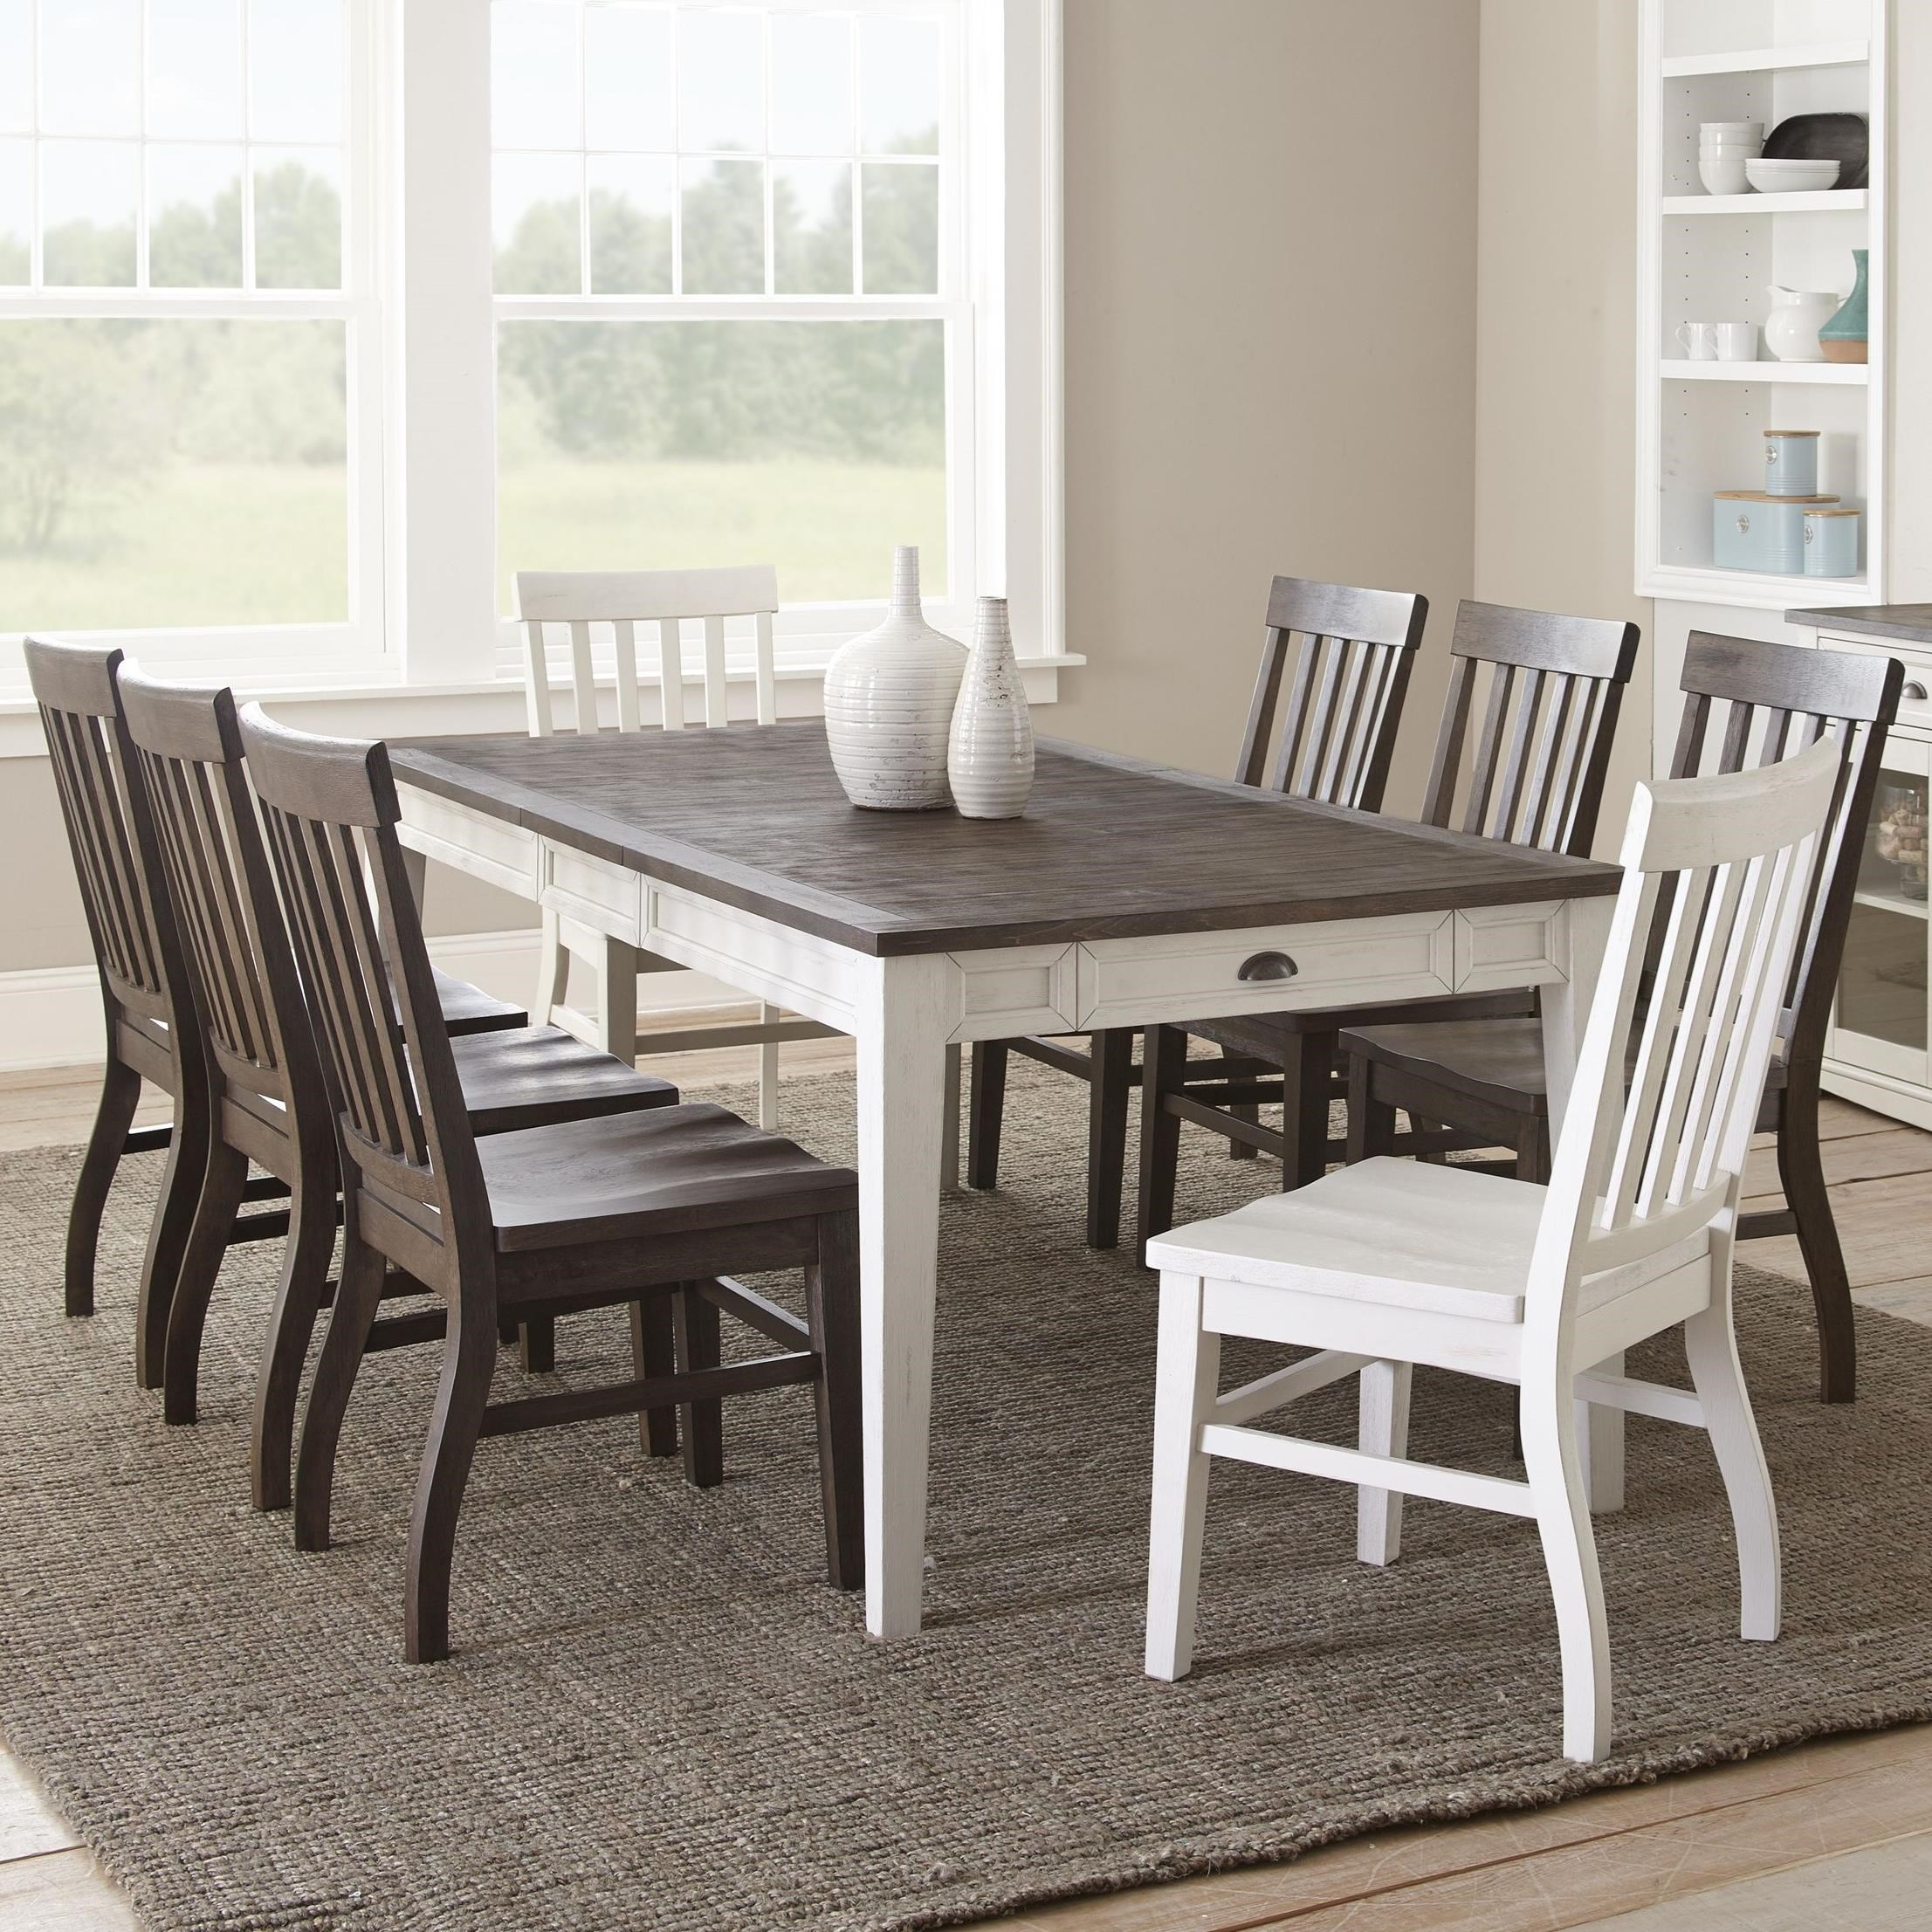 Black Dining Room Table And Chairs Cayla 9 Piece Two Tone Table And Chair Set By Vendor 3985 At Becker Furniture World